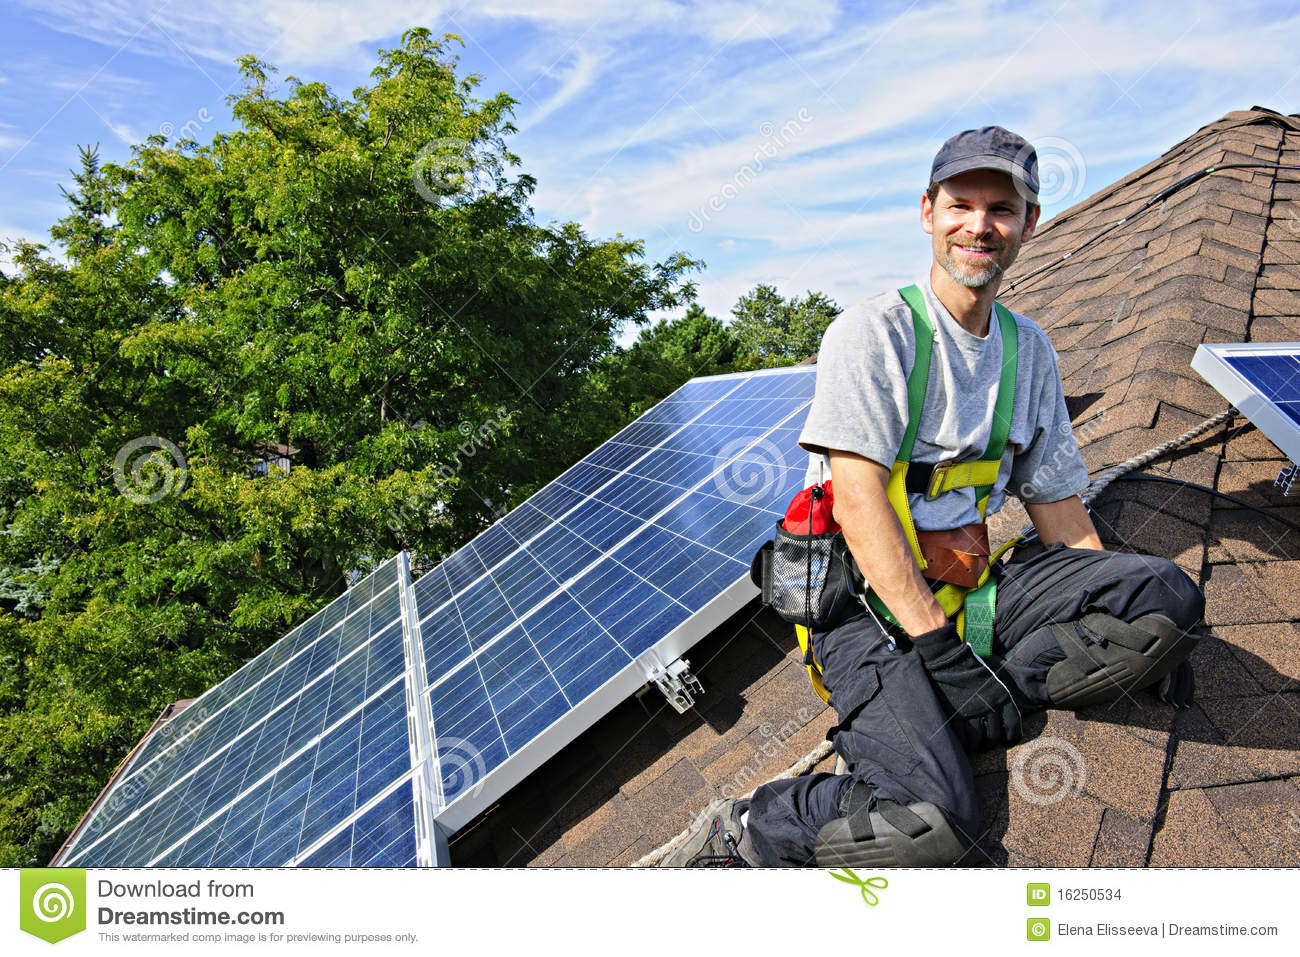 Man installing alternative energy photovoltaic solar panels on roof.